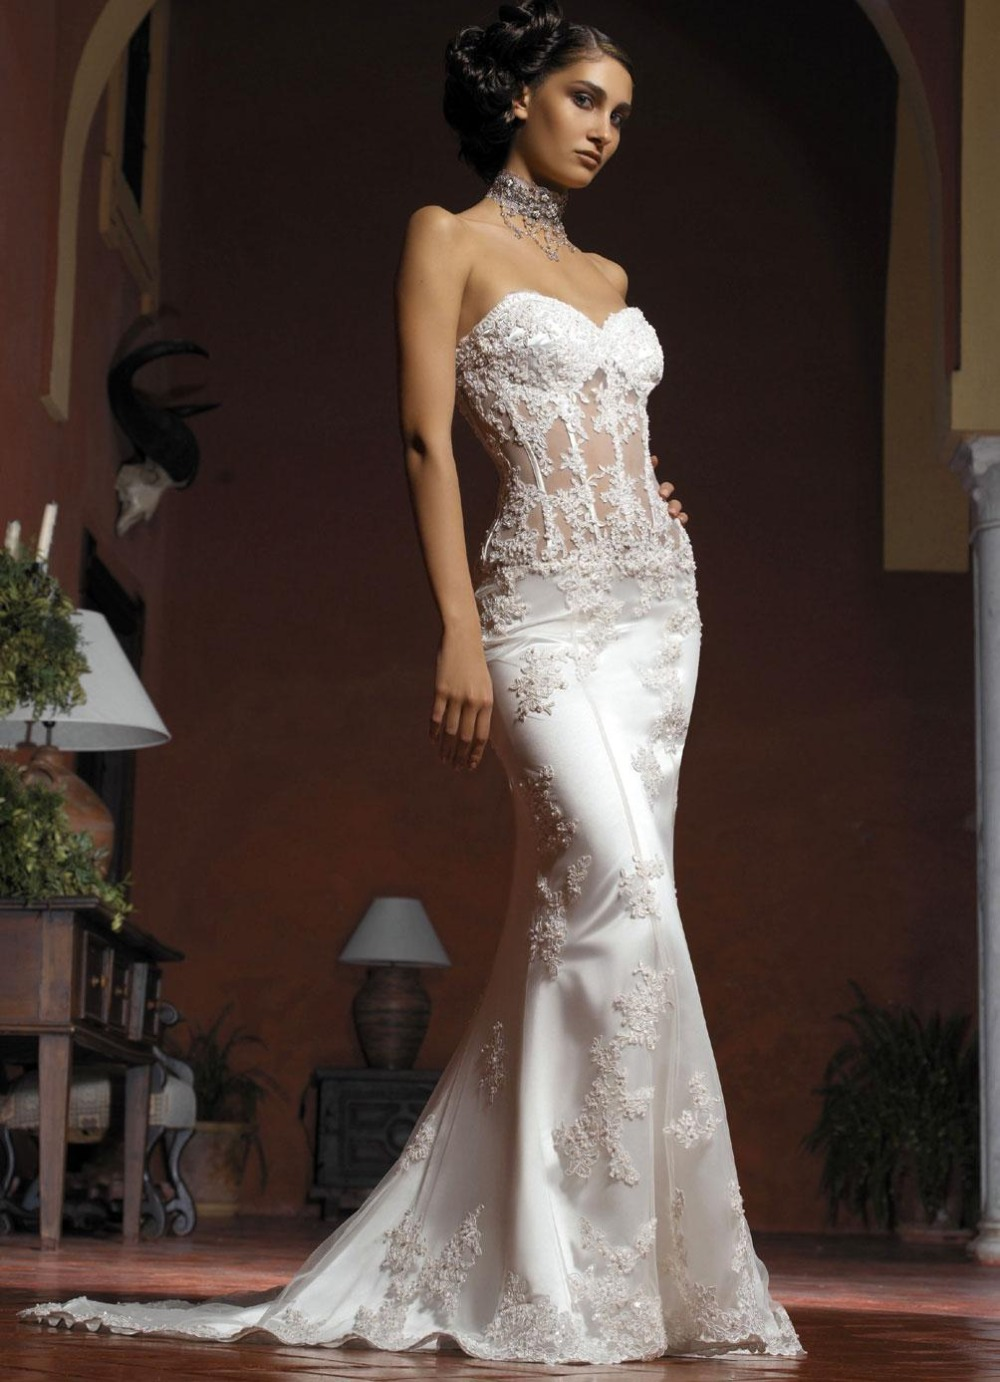 Strapless Bride Y Backless Lace Mermaid Wedding Dress Slim Fit Train Dresses A717 In From Weddings Events On Aliexpress